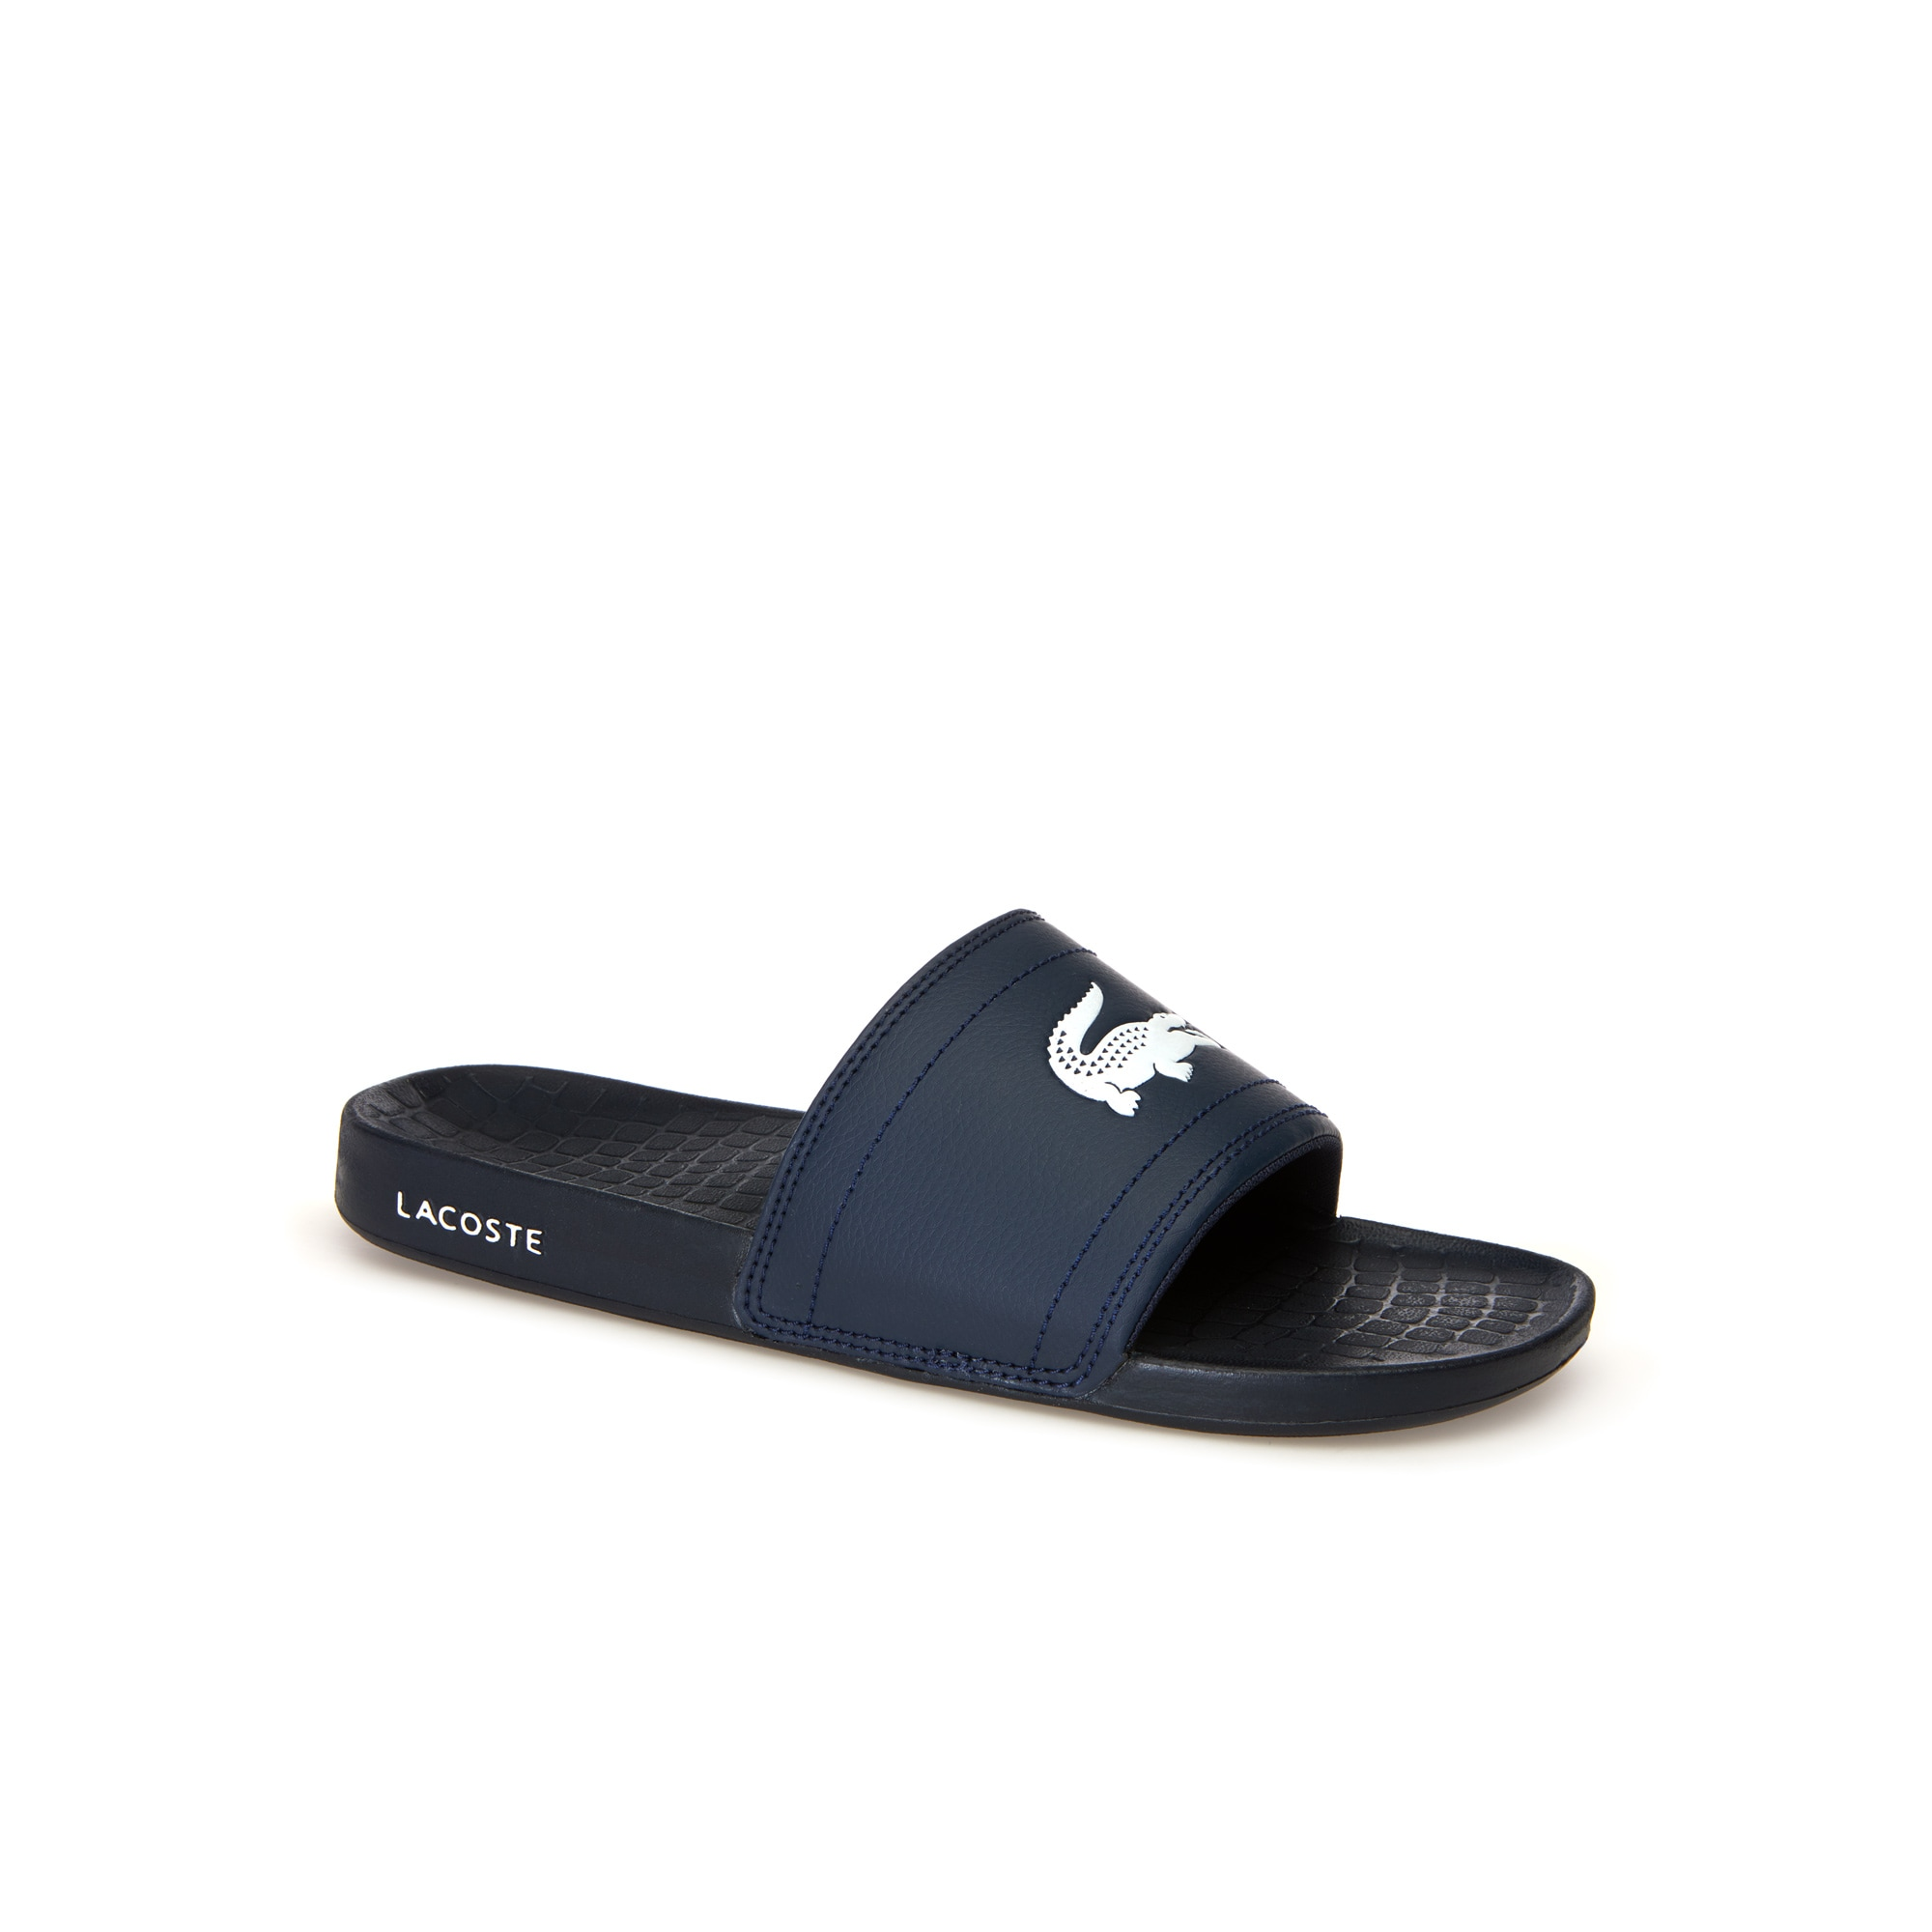 4c9845a28 Men s Frasier Slides